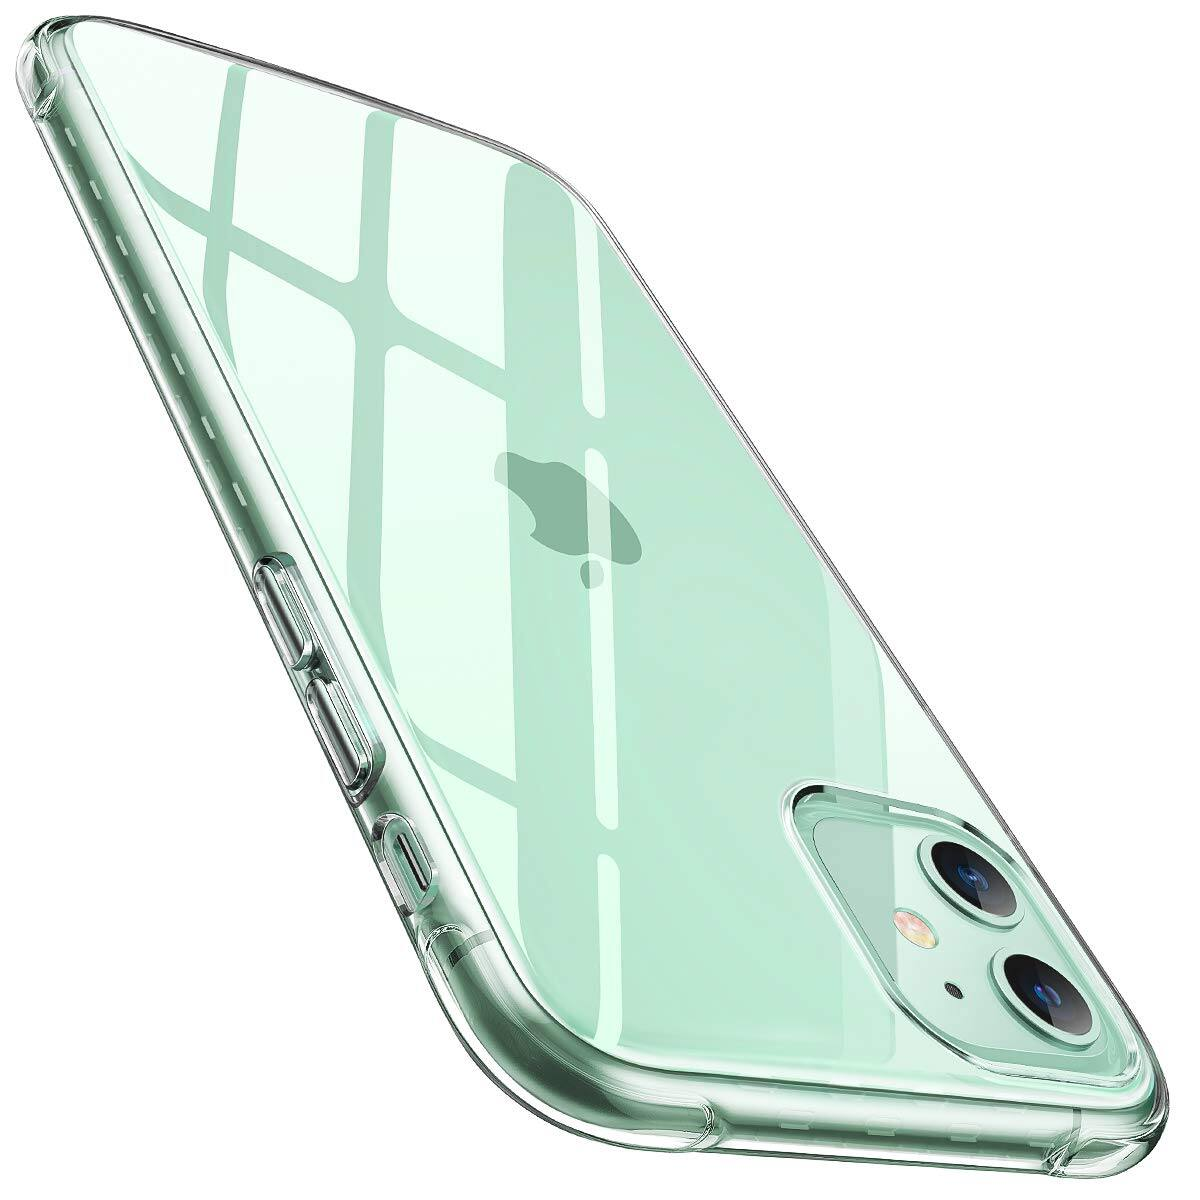 AINOPE iPhone 11 (Cyrstal Clear, Anti-Drop, Soft Sillicone TPU) Phone Case for $4.94 + FSSS